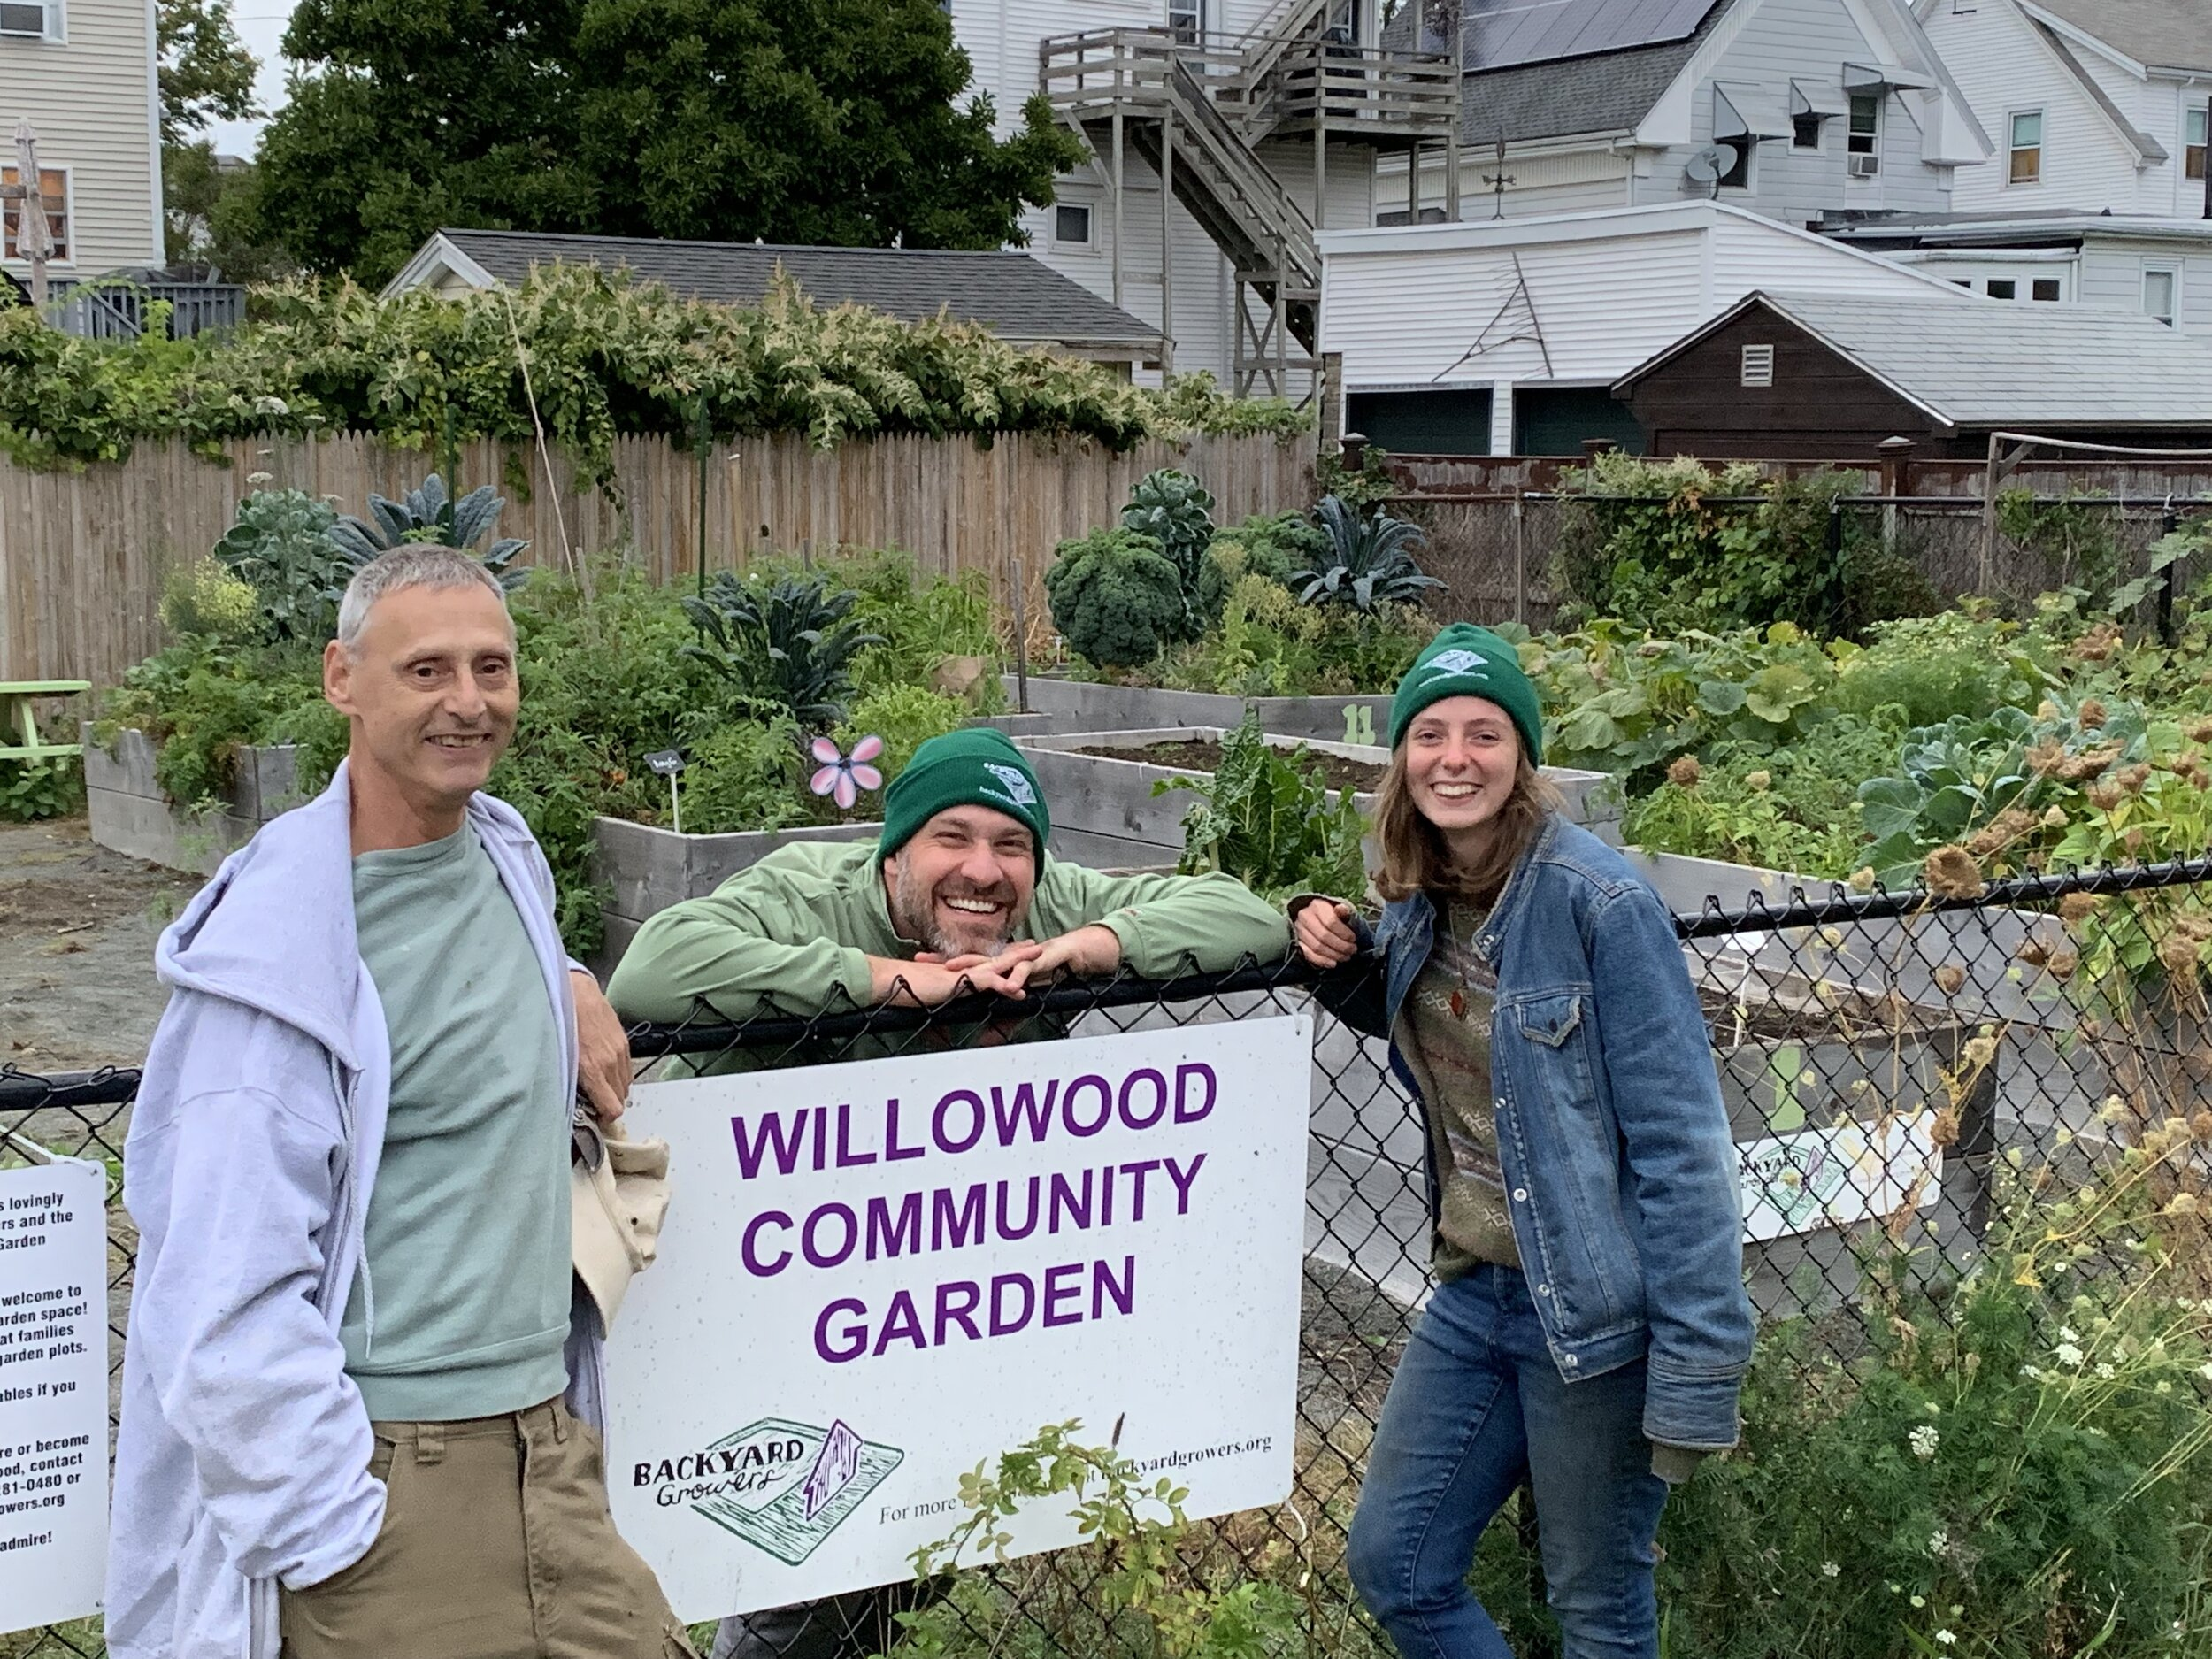 Garden Mentors Peter DeNigris, left, and Joel Emerson, center, with 2019 FoodCorps Service Member Emily Brown, right.